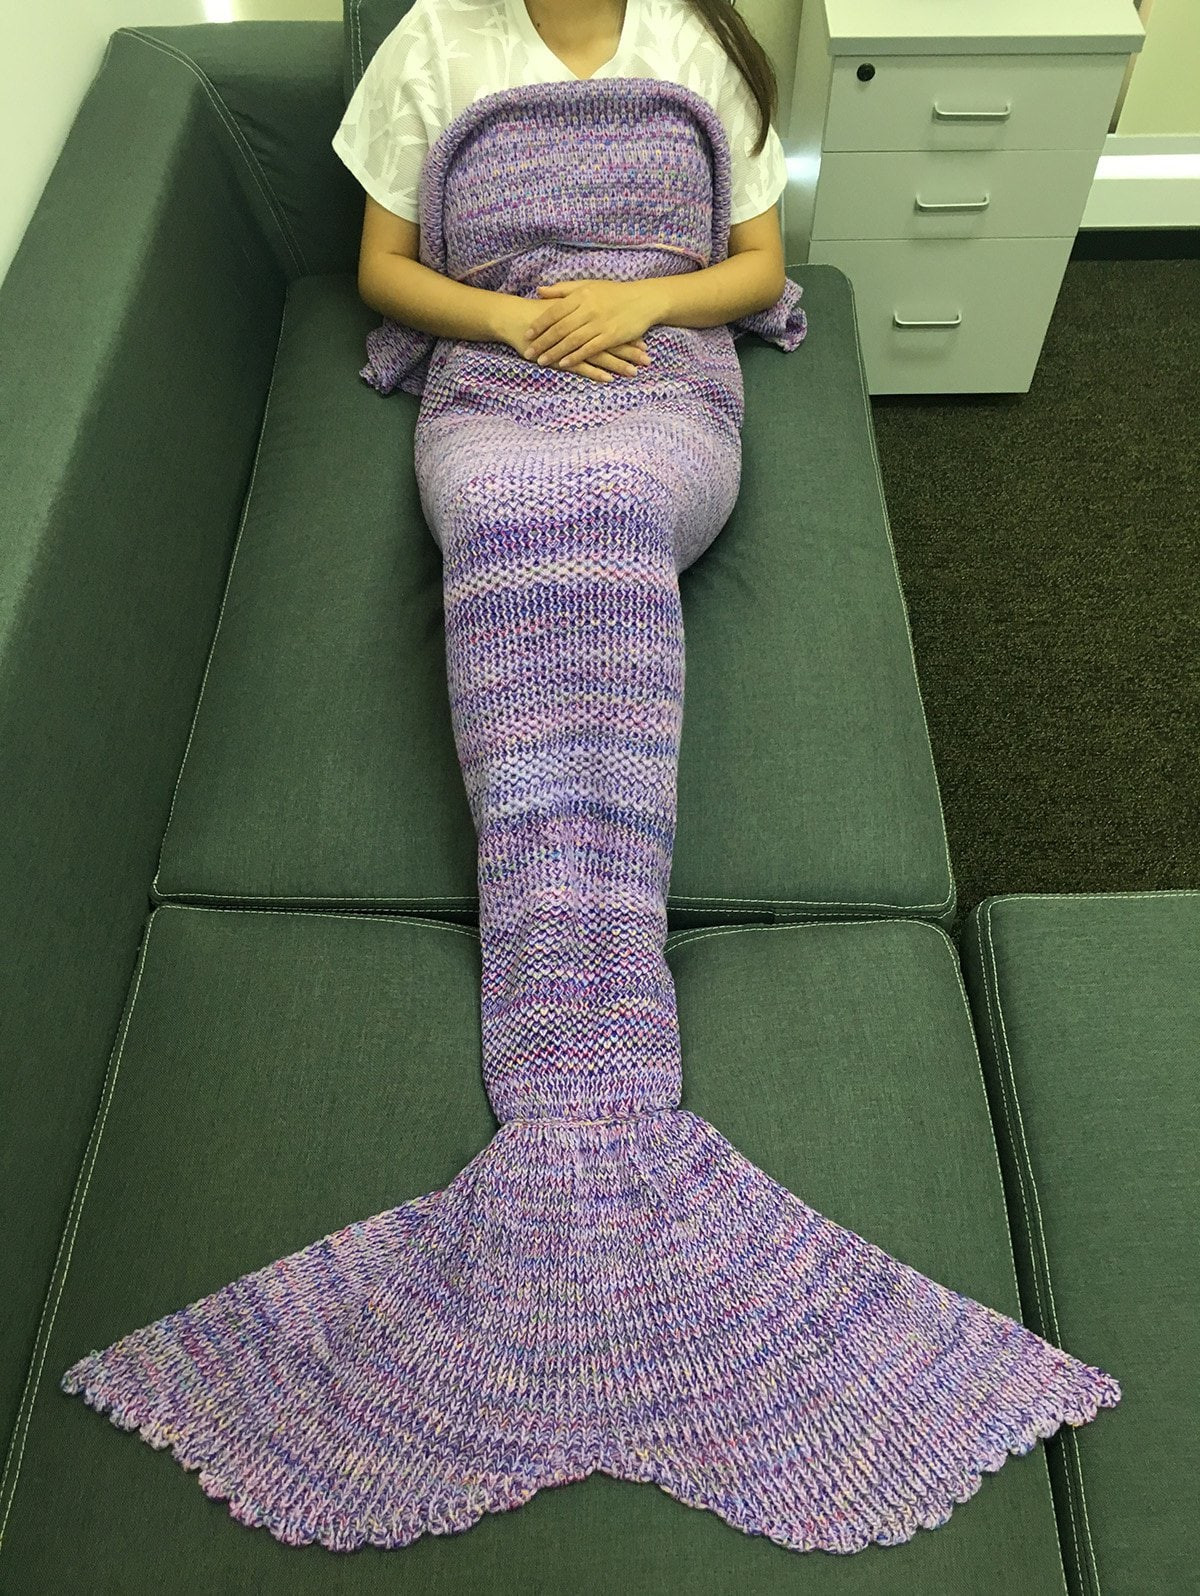 Mermaid Blanket Pattern Awesome Chic Quality Multicolor Stripe Pattern Knitting Mermaid Of Adorable 42 Pics Mermaid Blanket Pattern